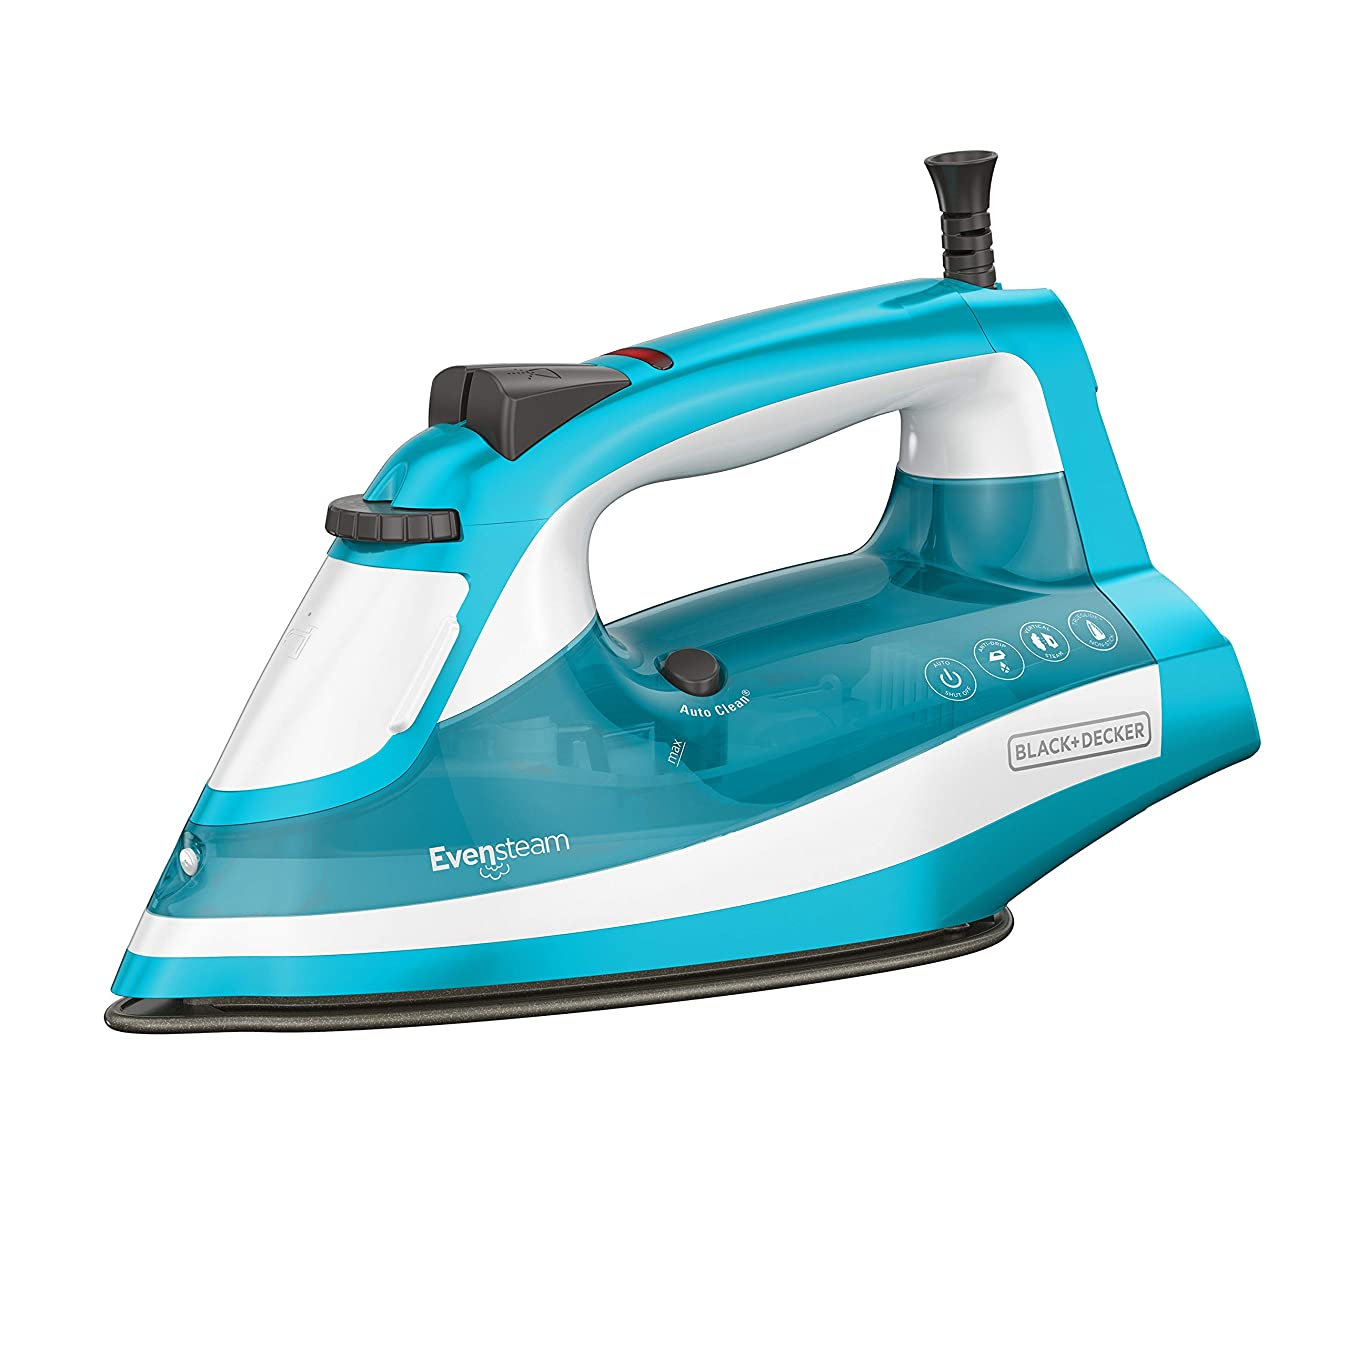 BLACK+DECKER IR16X One-Step Garment Steam Iron with Stainless Nonstick Soleplate, One Size, Turquoise